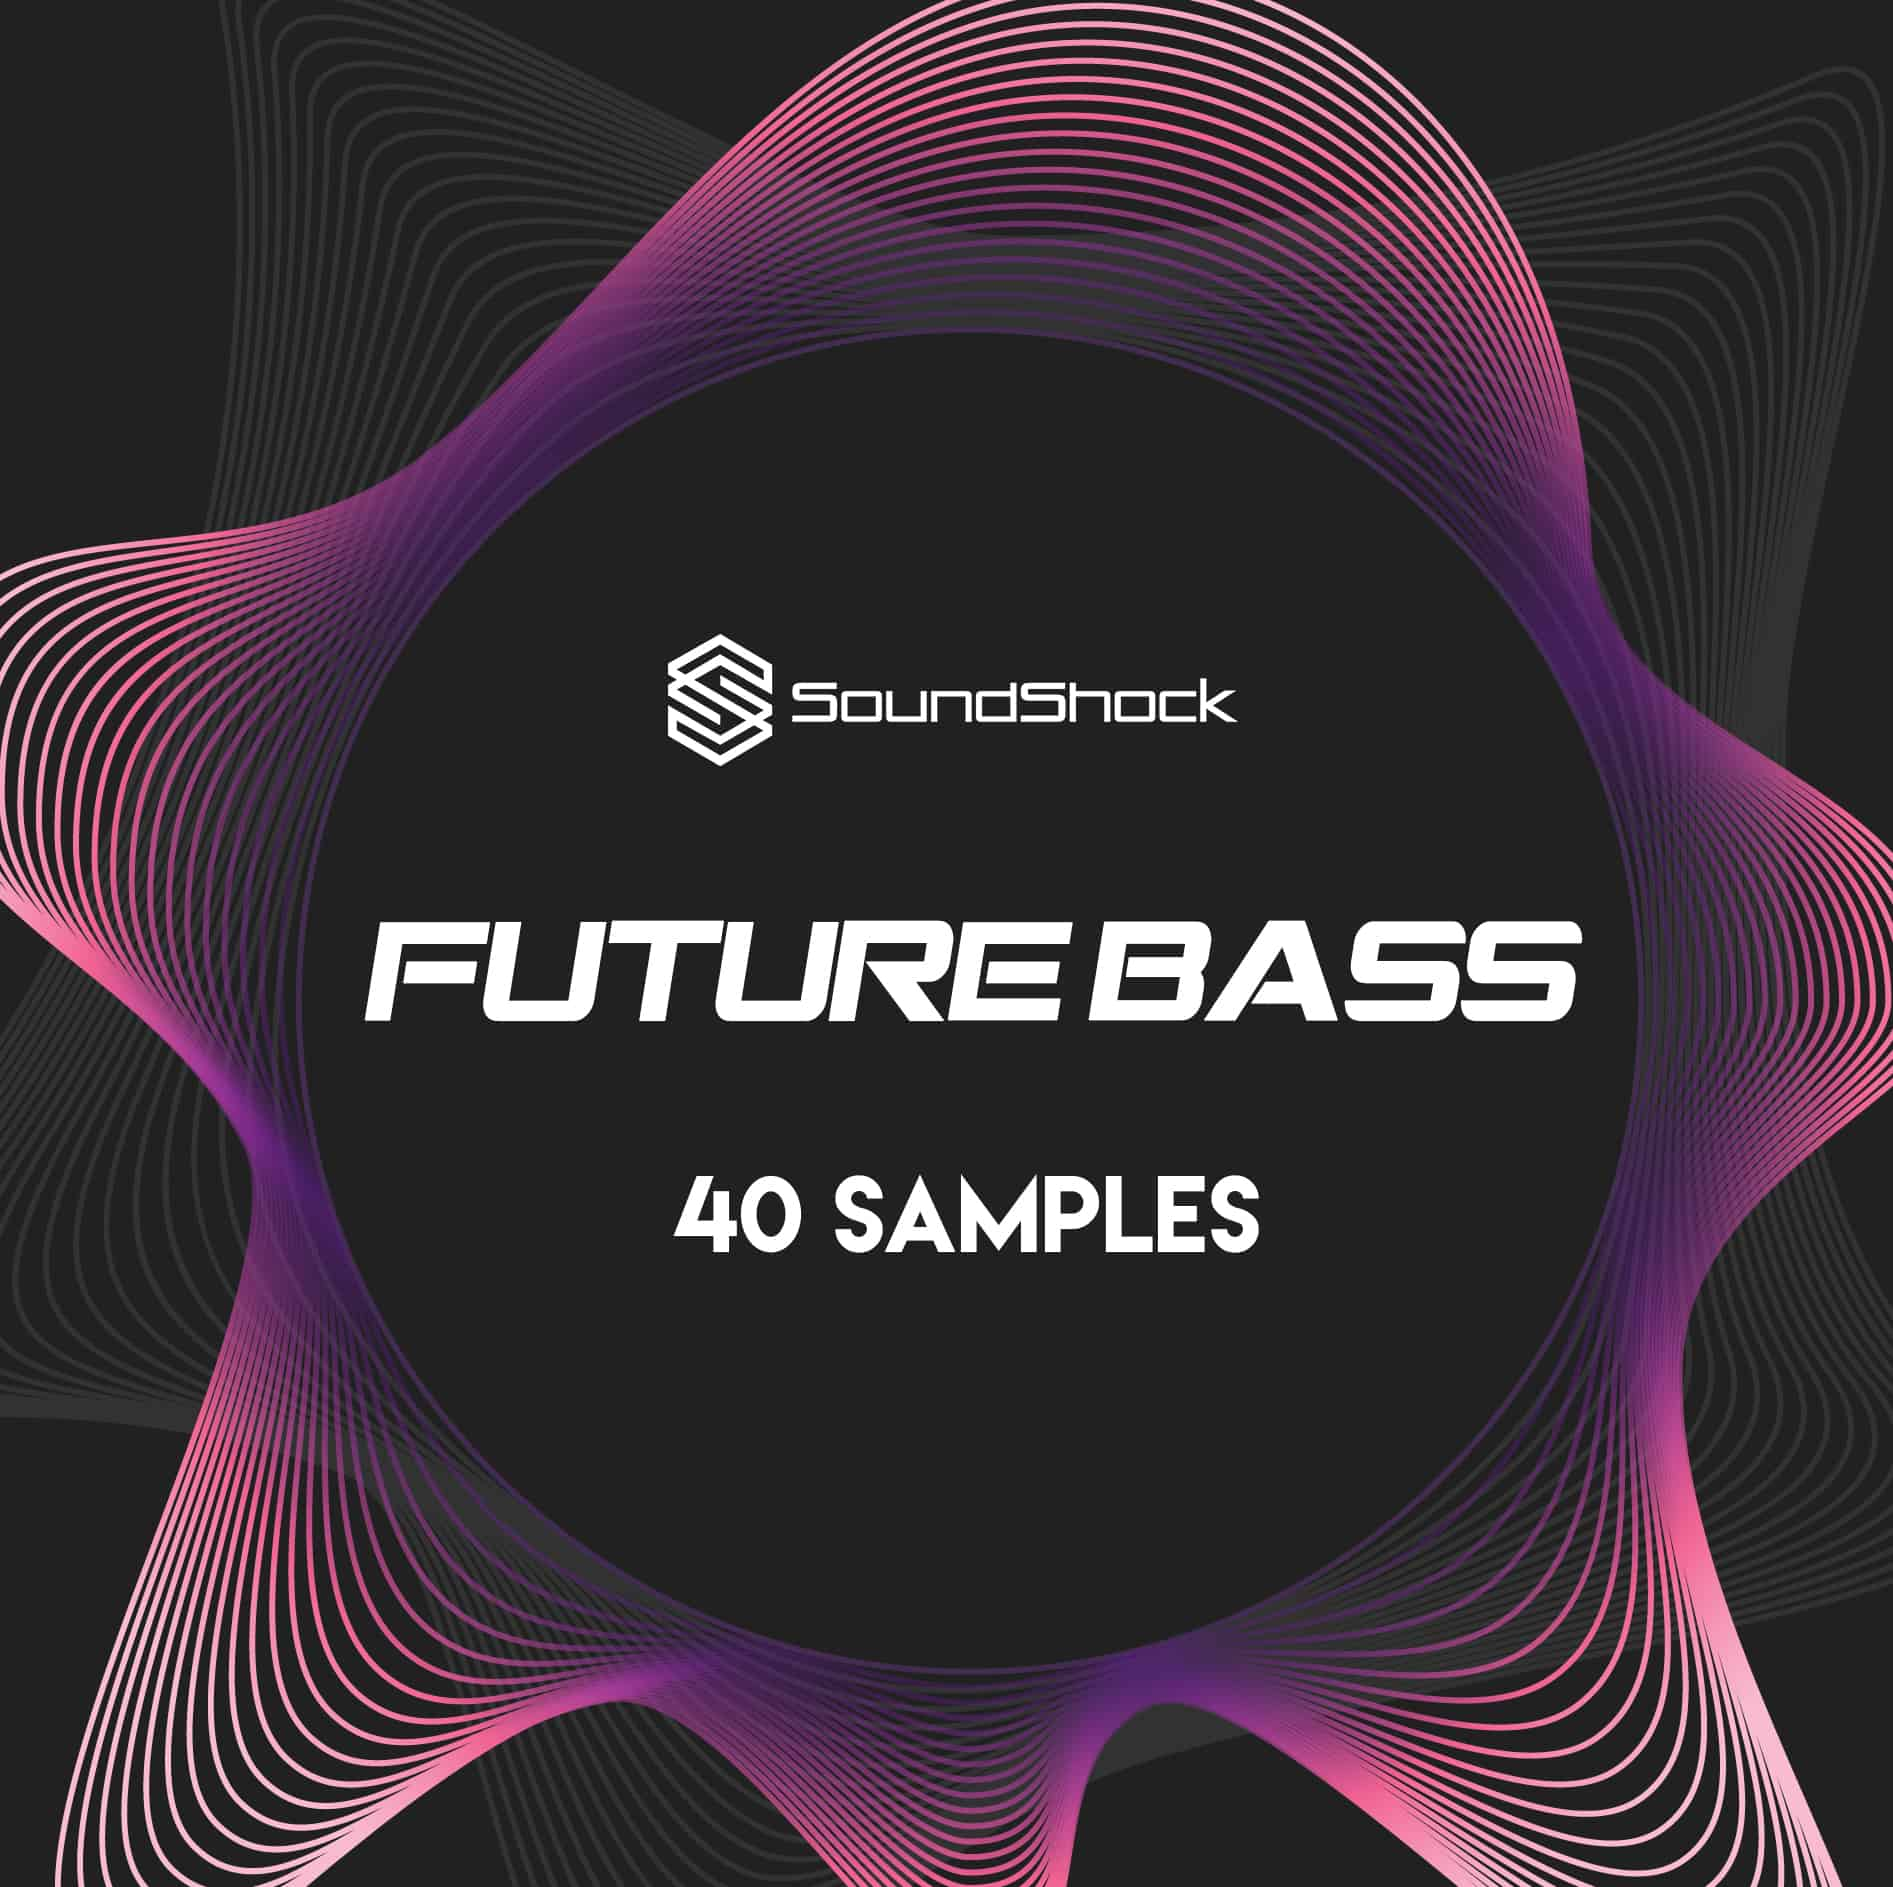 Future Bass Sample Pack by SoundShock, Cover Art